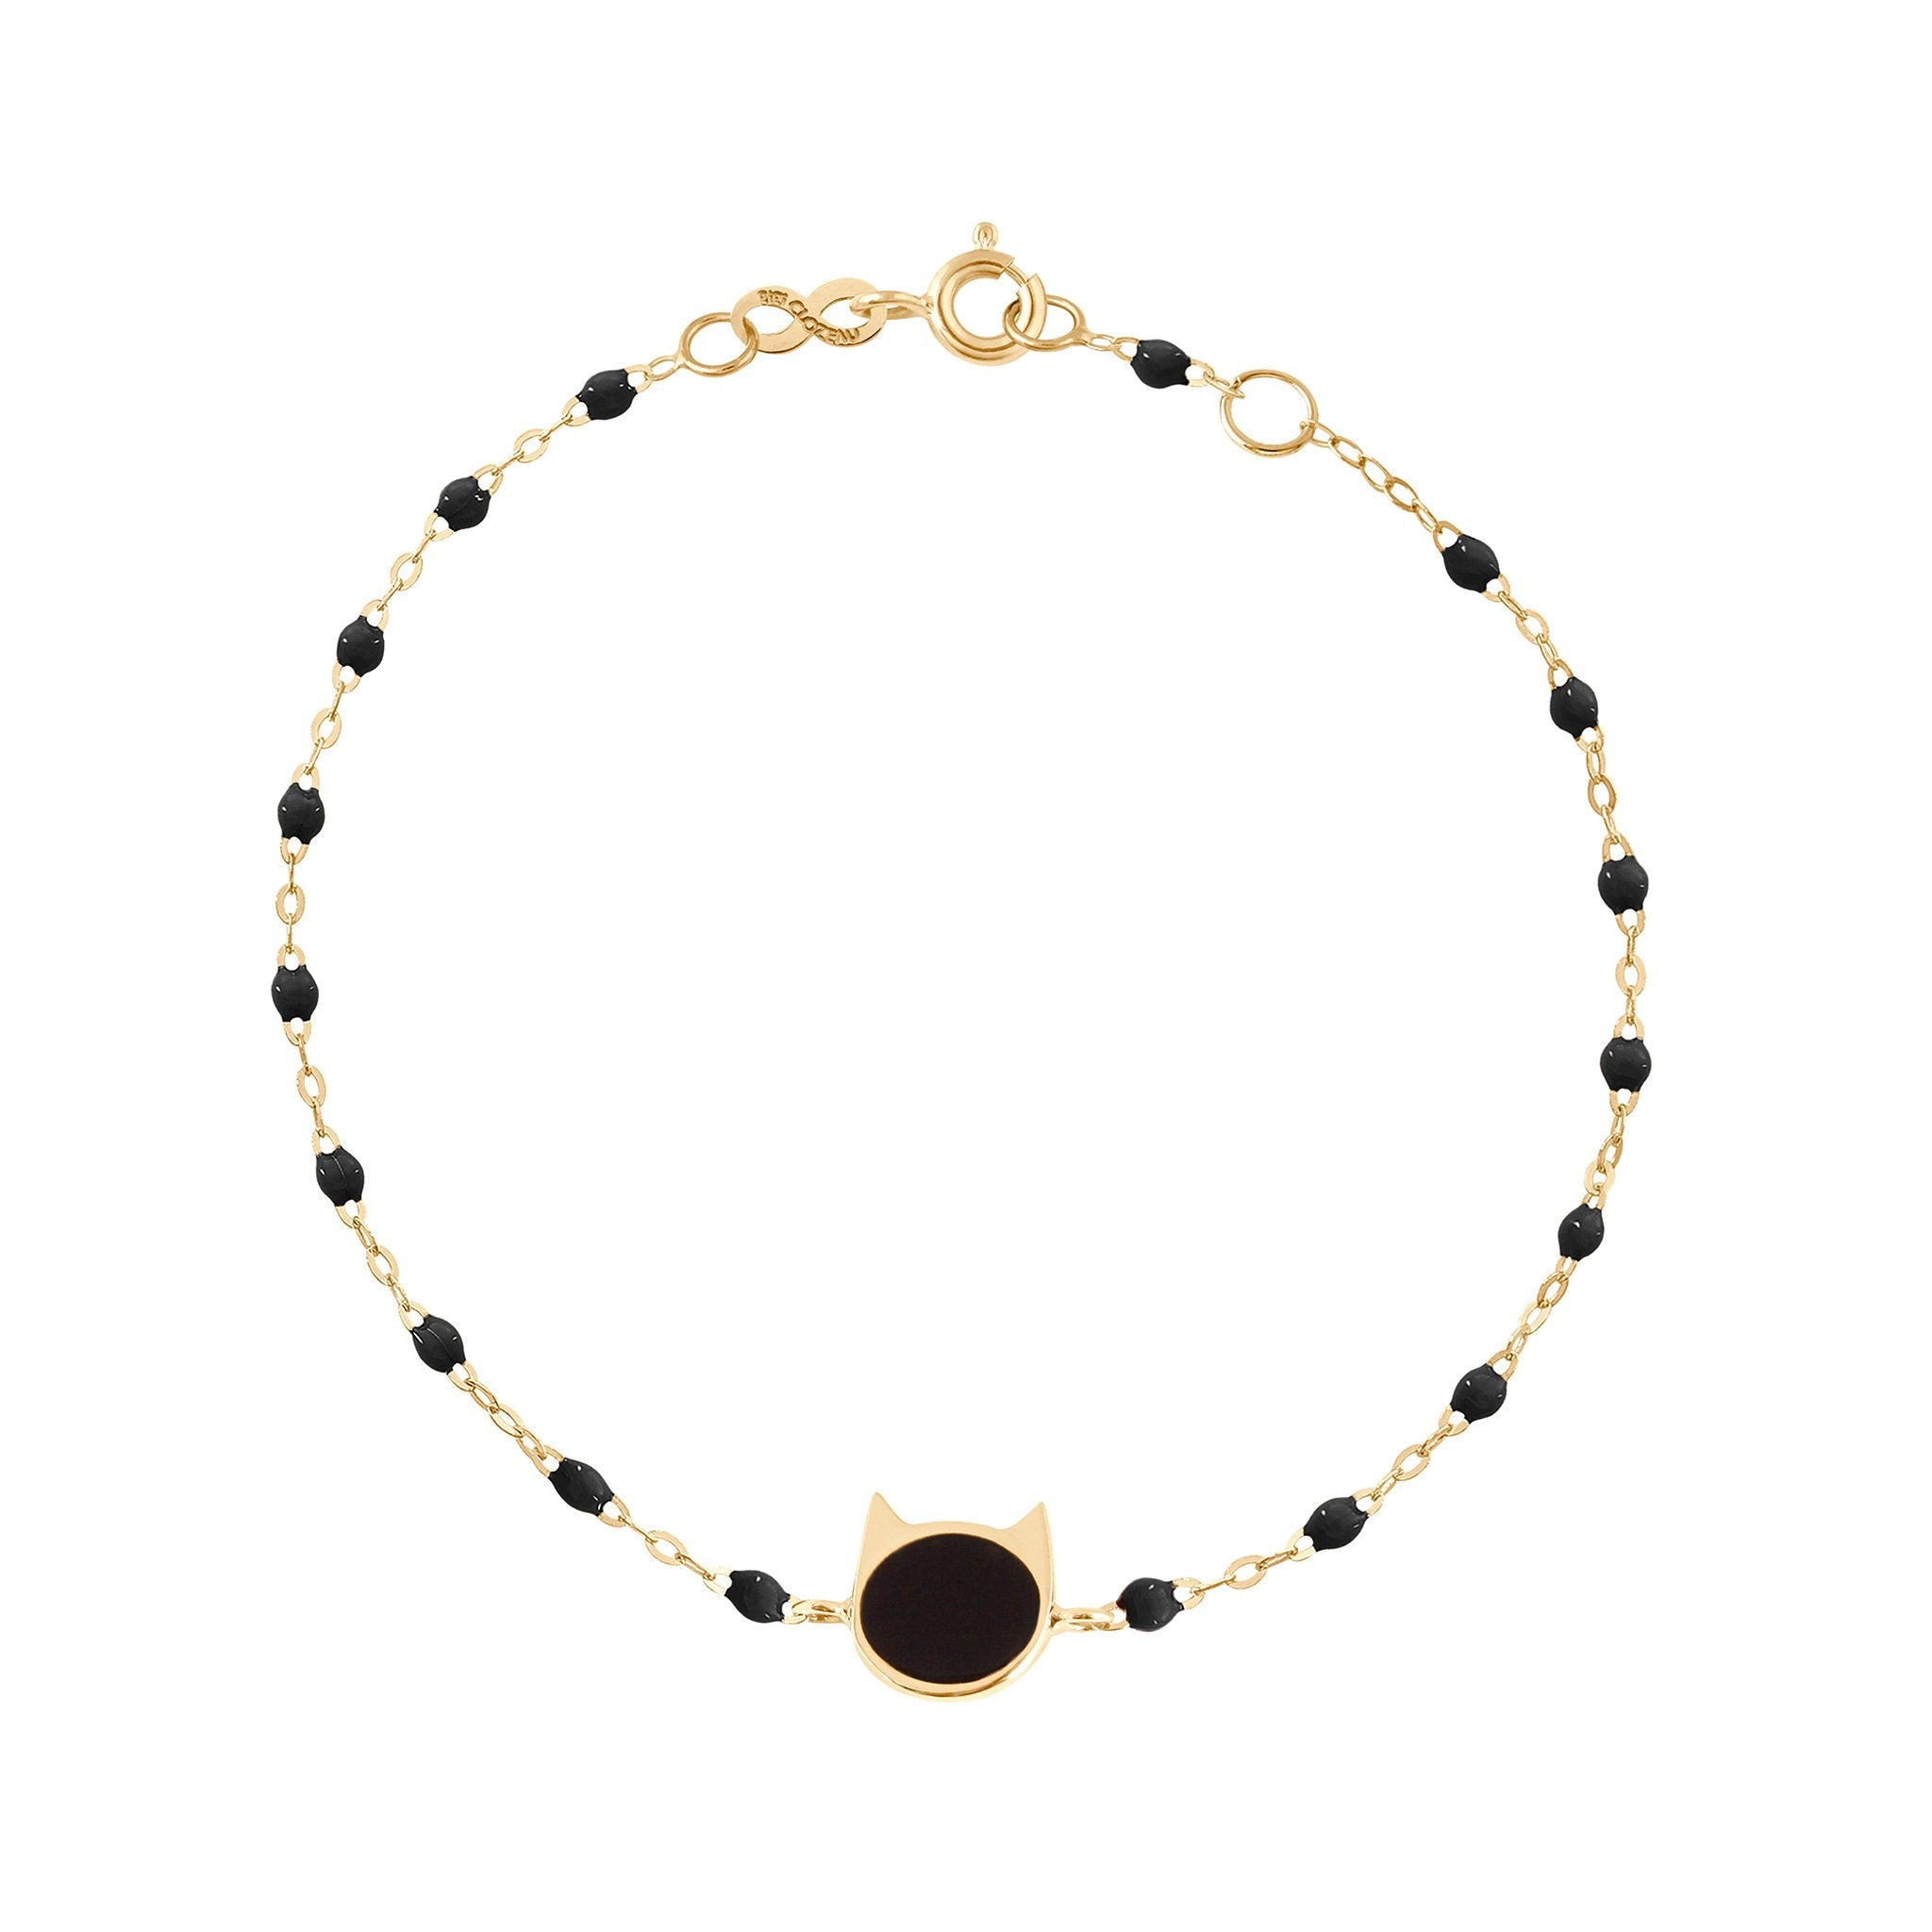 Gigi Clozeau - Cat Classic Gigi Black bracelet, Yellow Gold, 6.7